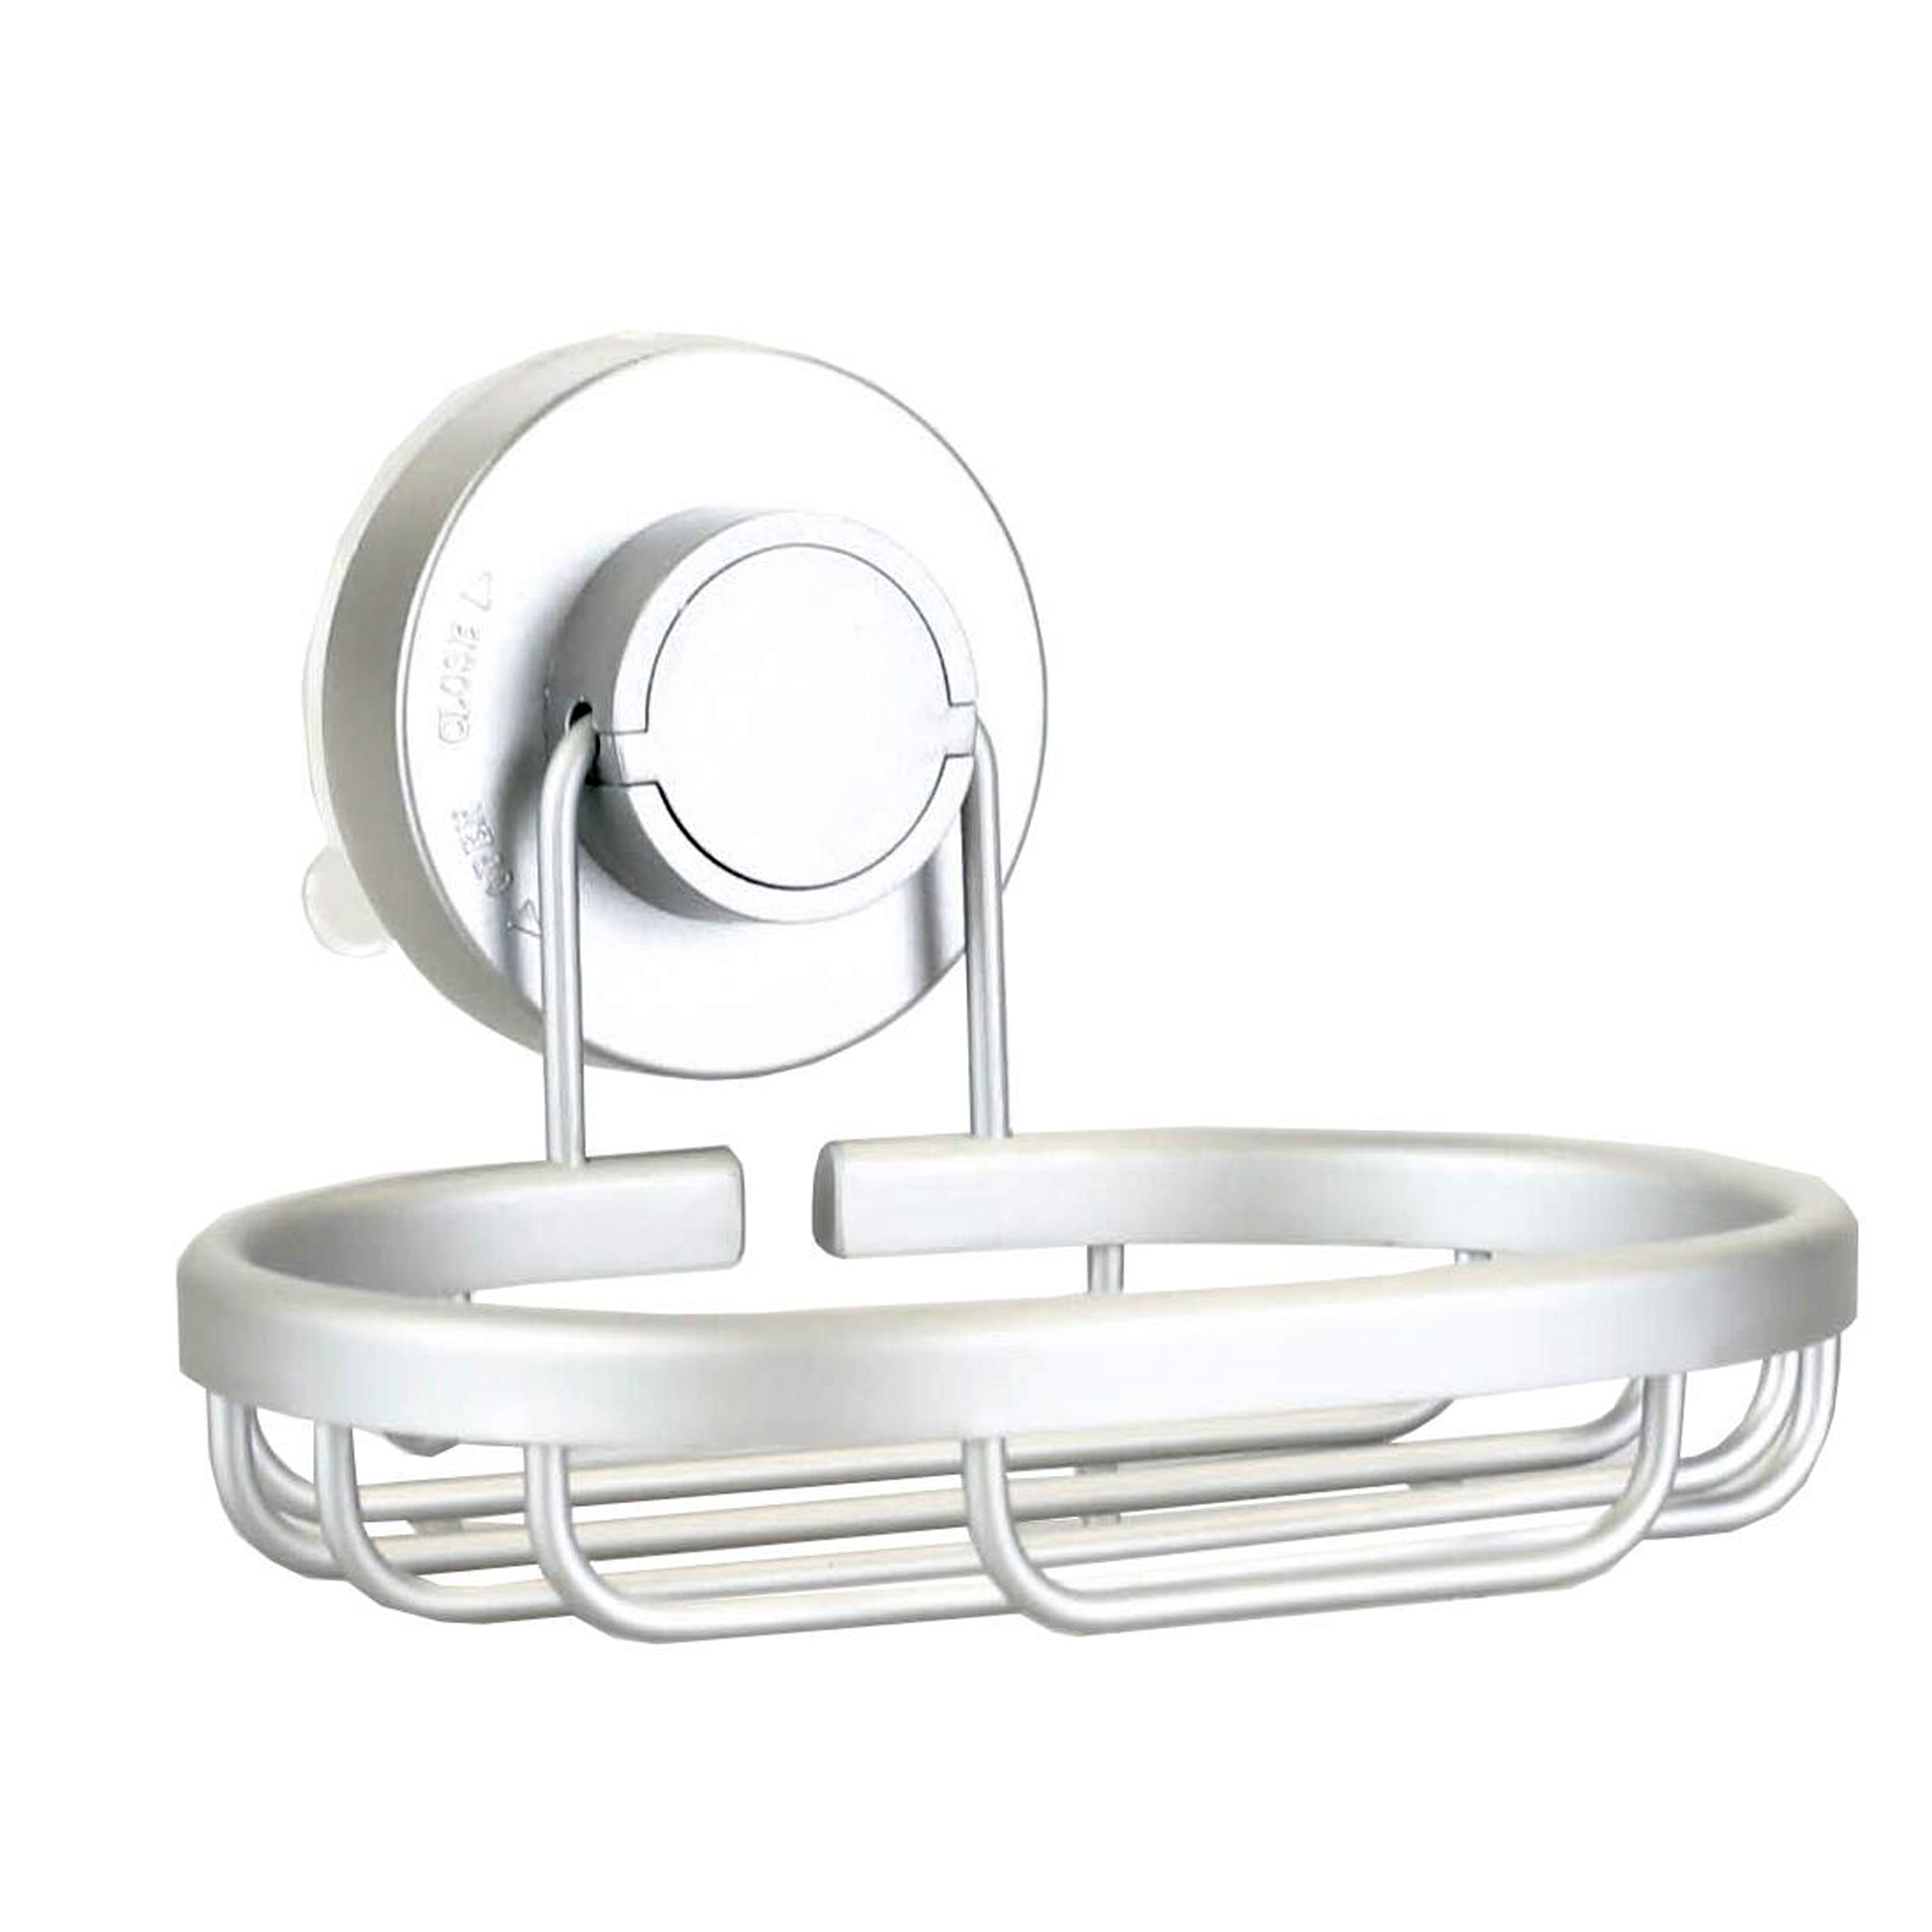 Super Suction Soap Dish Bathroom Powerful Suction Cup Soap Holder Rack Drainer